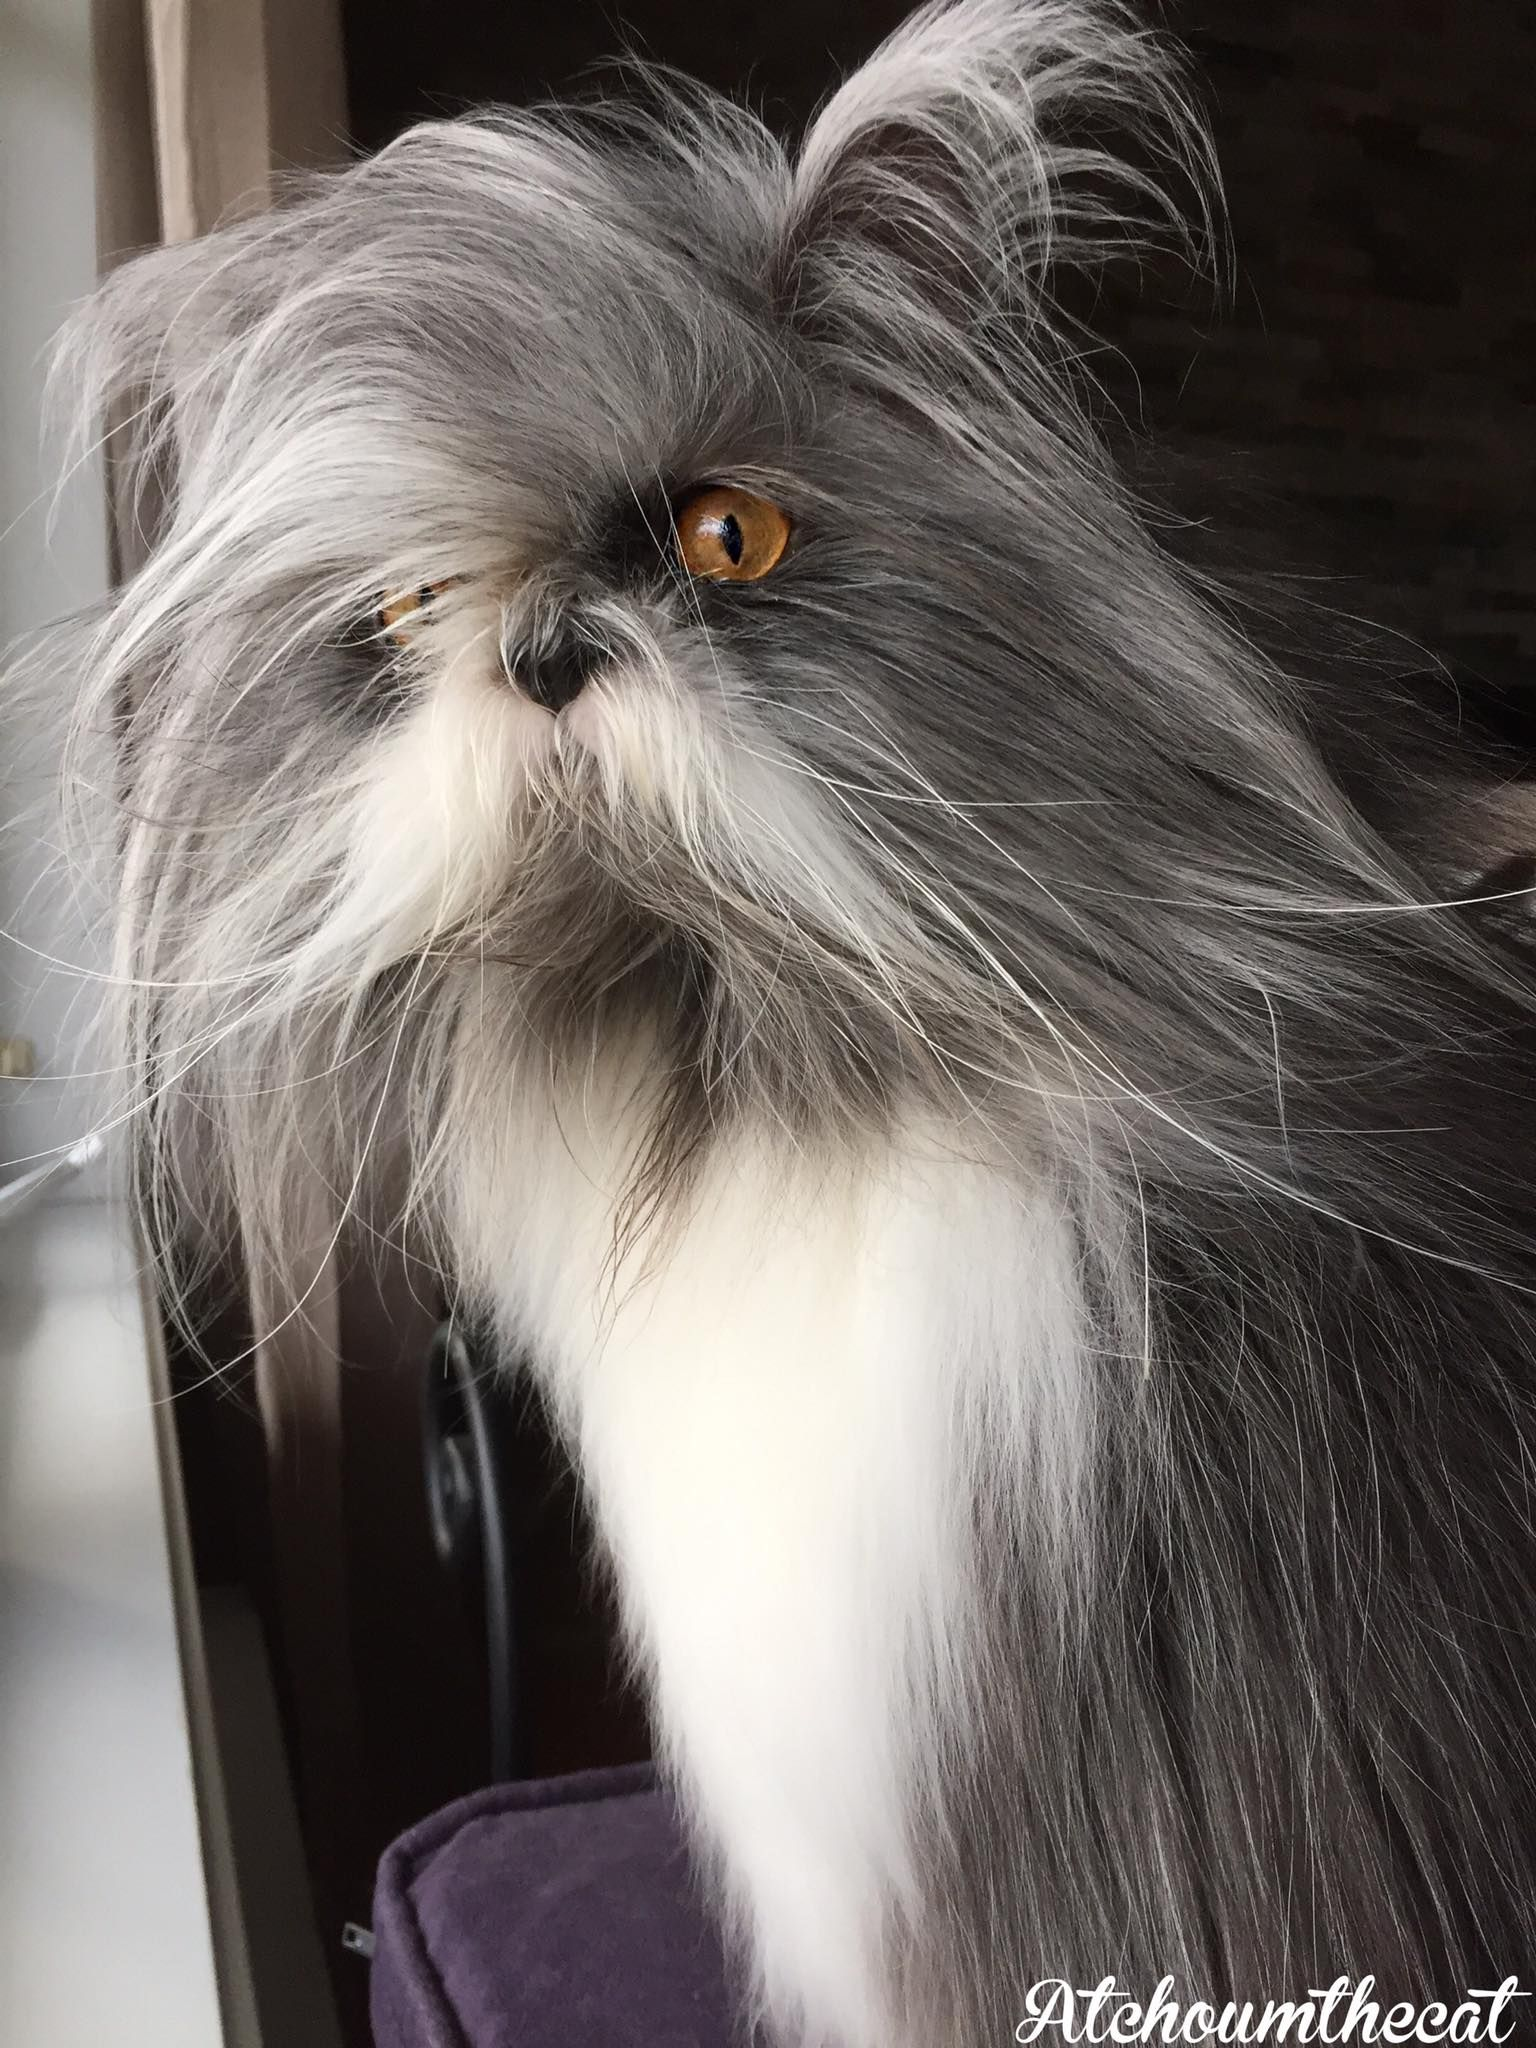 Atchoum the cat has werewolf syndrome his hair never